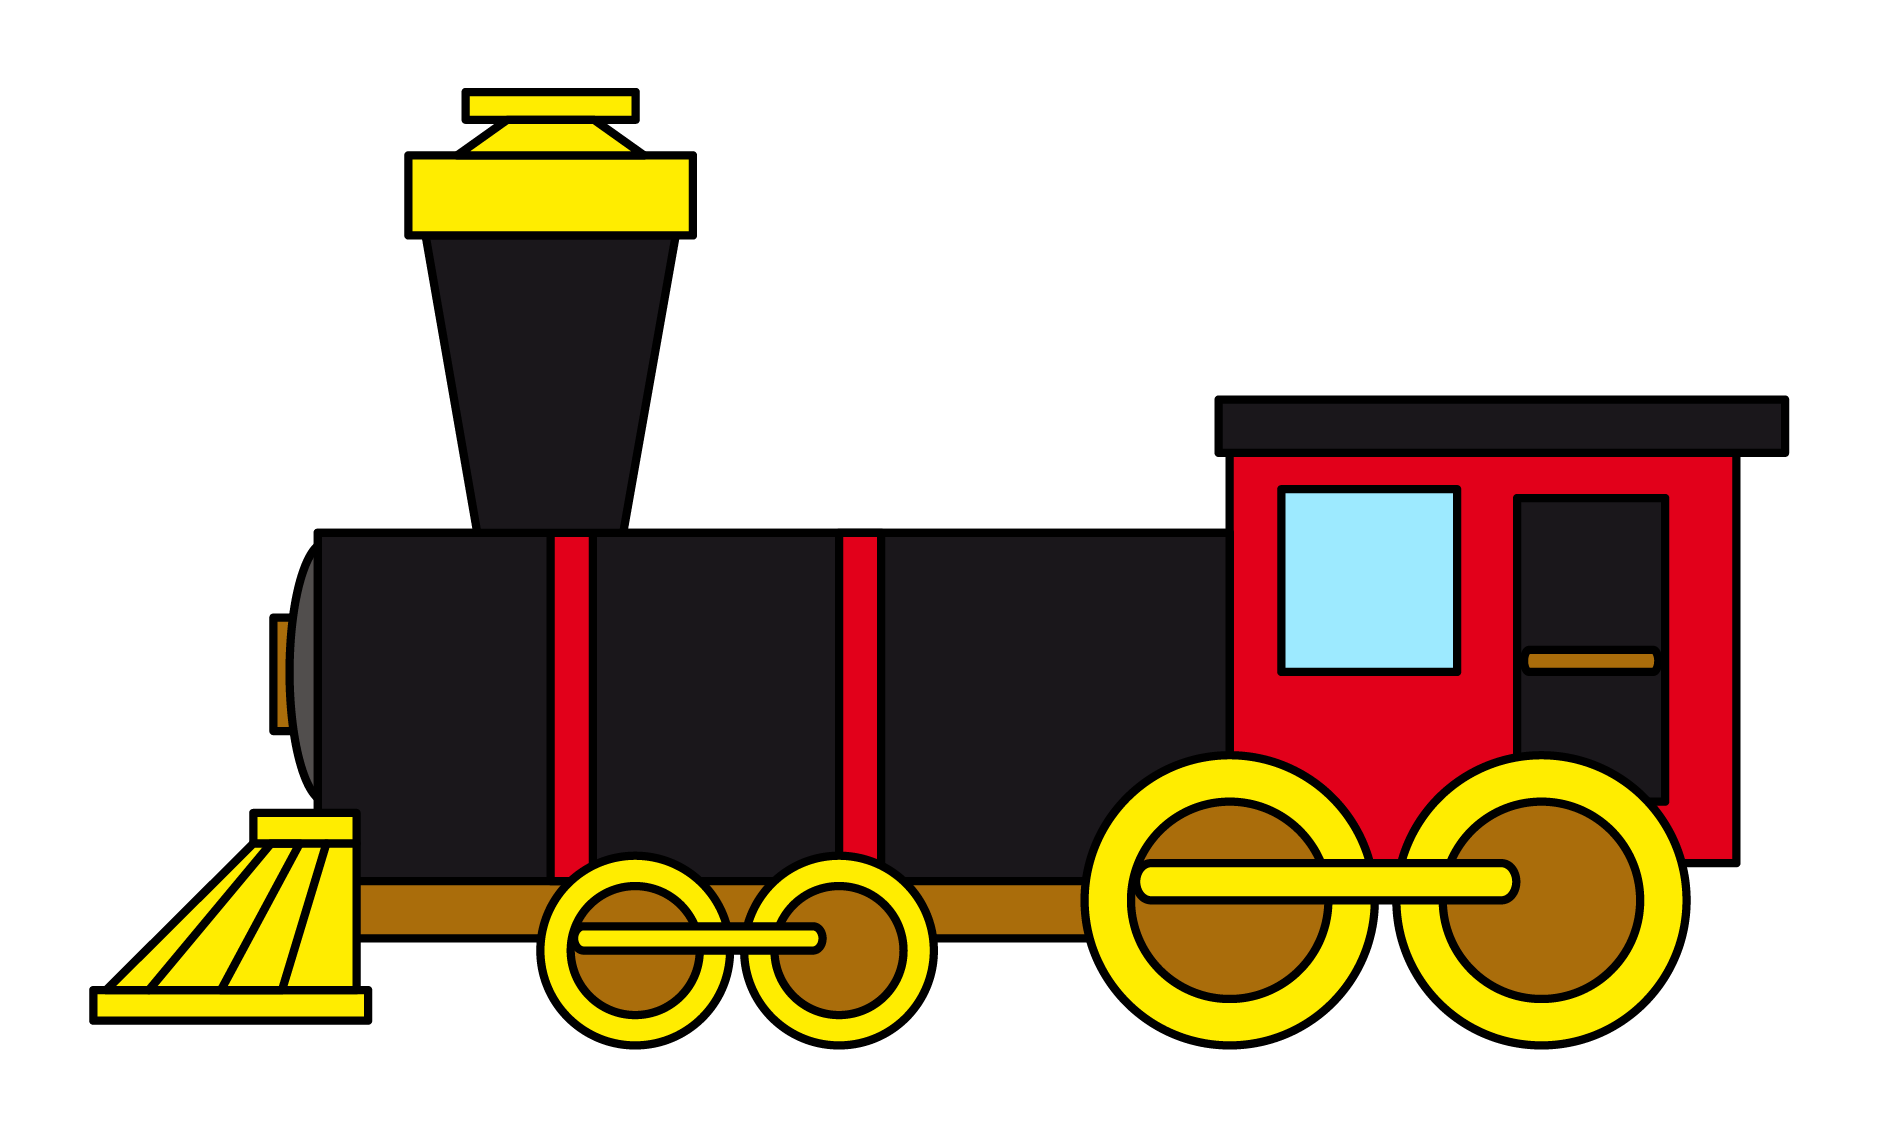 Train free to use clip art 2 - Toy Train Clipart